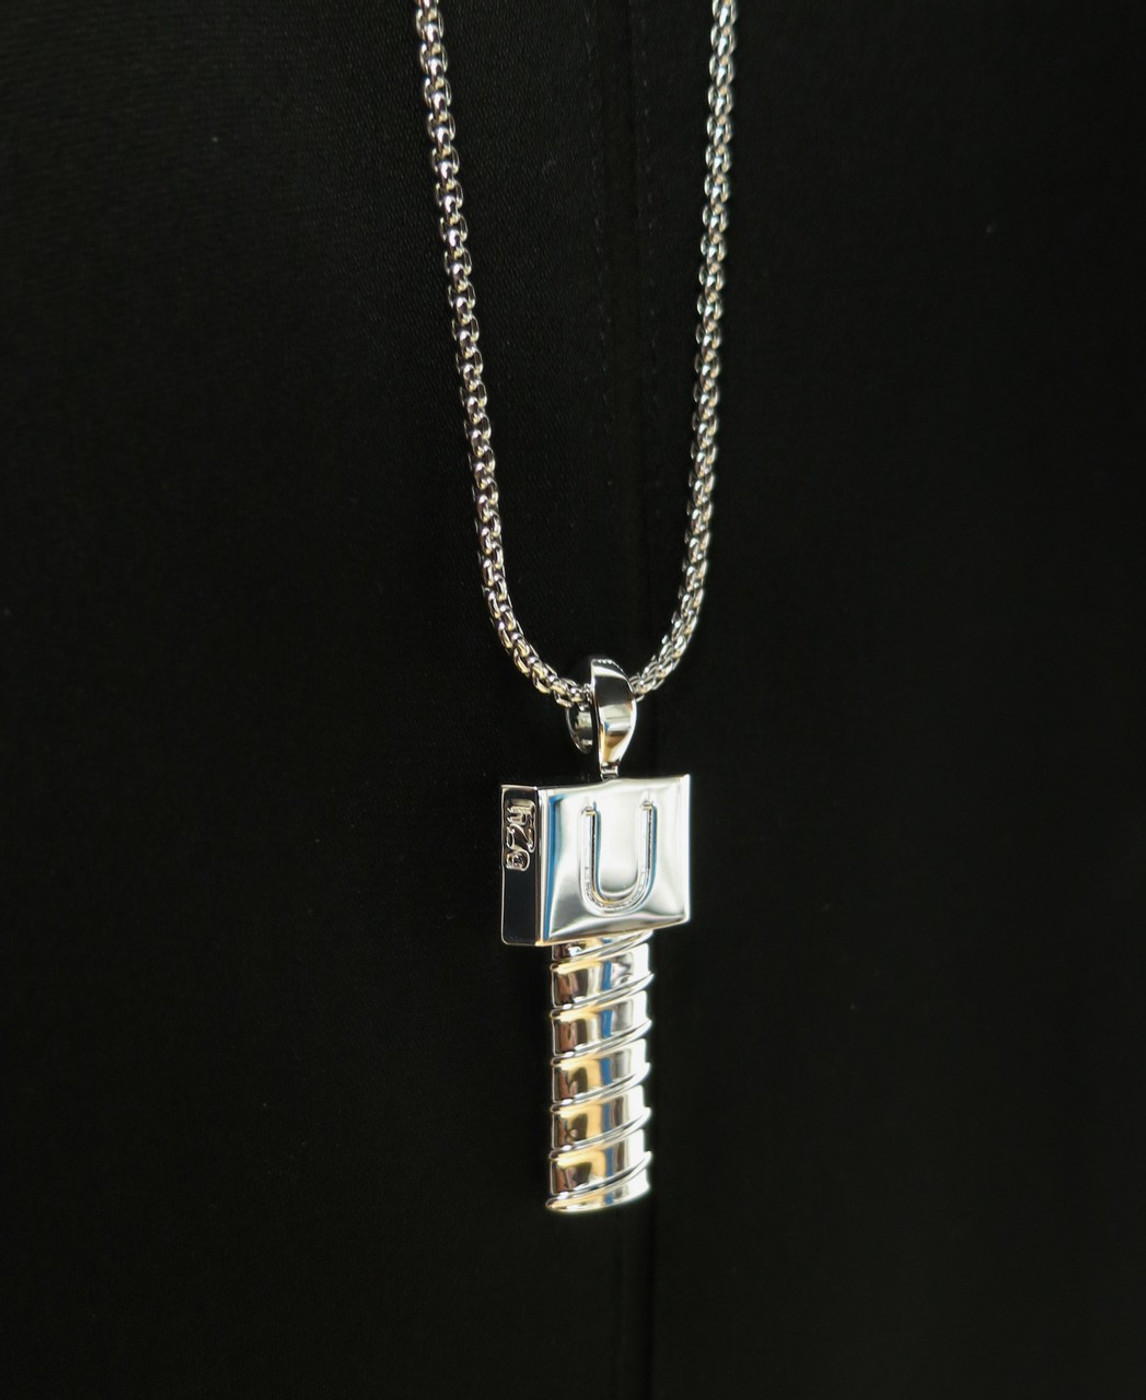 Men Screw U Silver Necklace